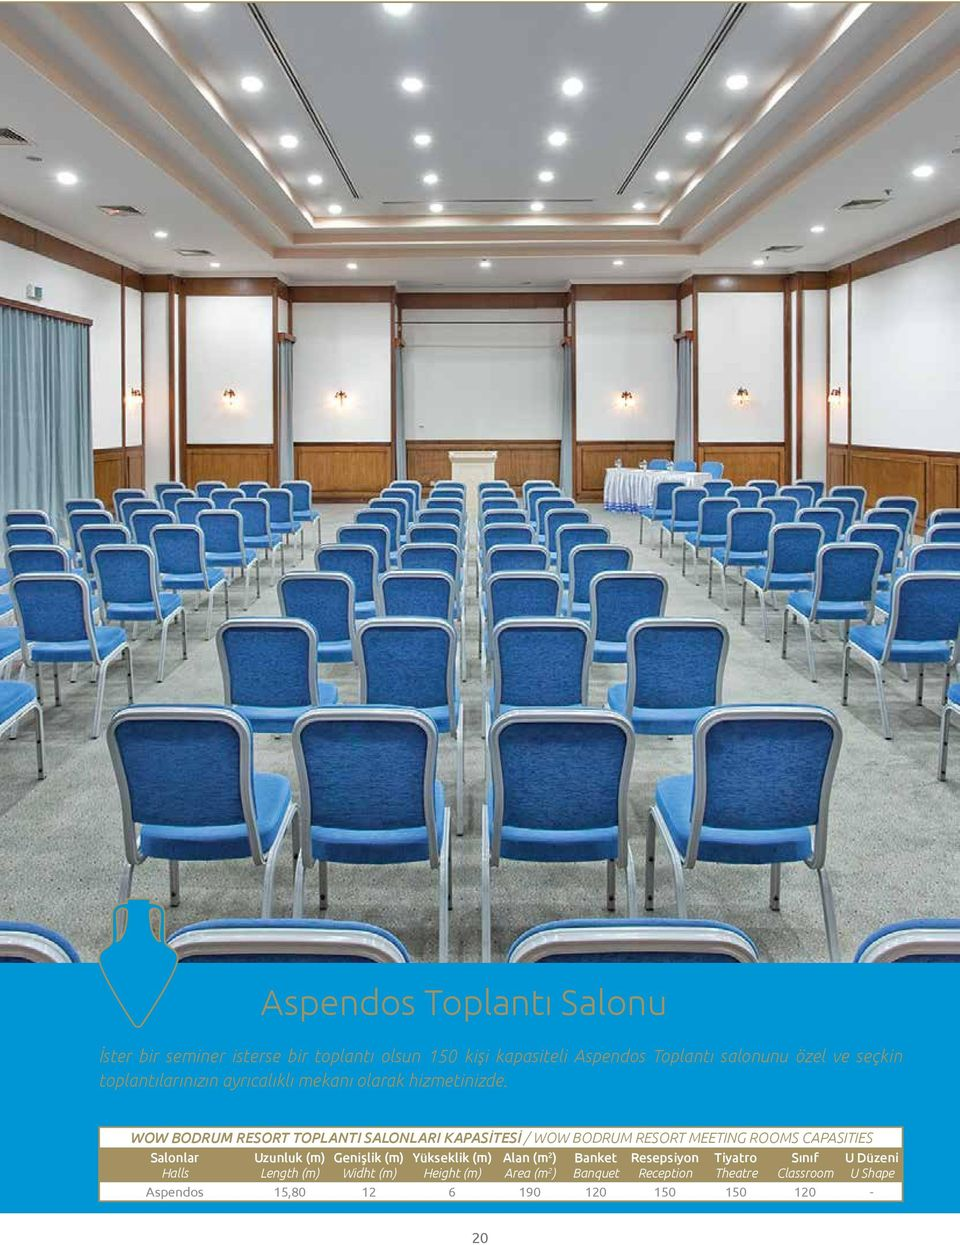 WOW BODRUM RESORT TOPLANTI SALONLARI KAPASİTESİ / WOW BODRUM RESORT MEETING ROOMS CAPASITIES Salonlar Halls Uzunluk (m) Length (m)